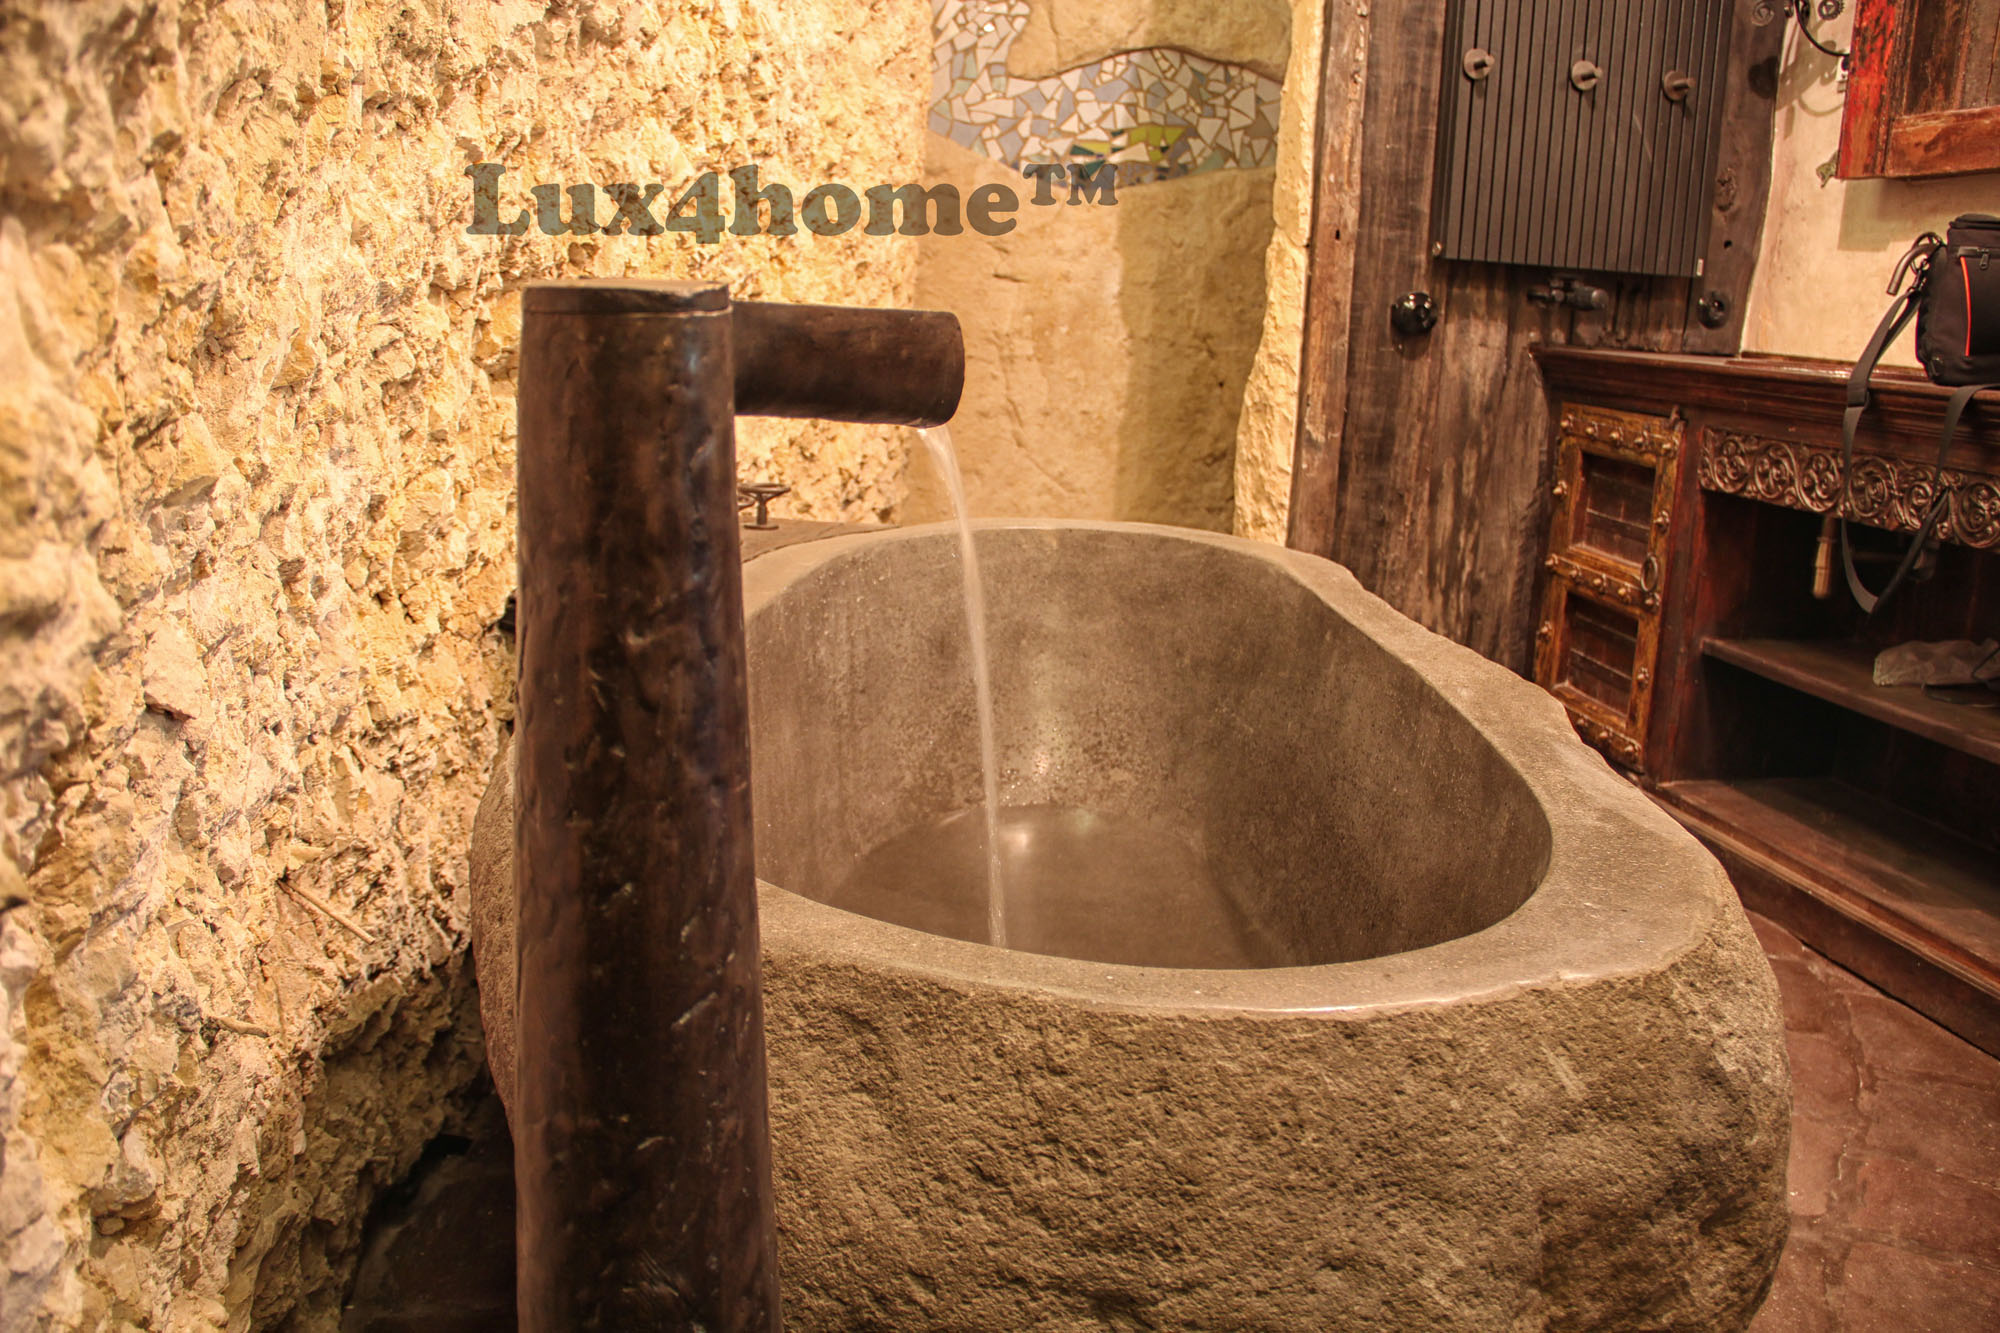 River stone bathtub producer - soaking bathtub Lux4home.com